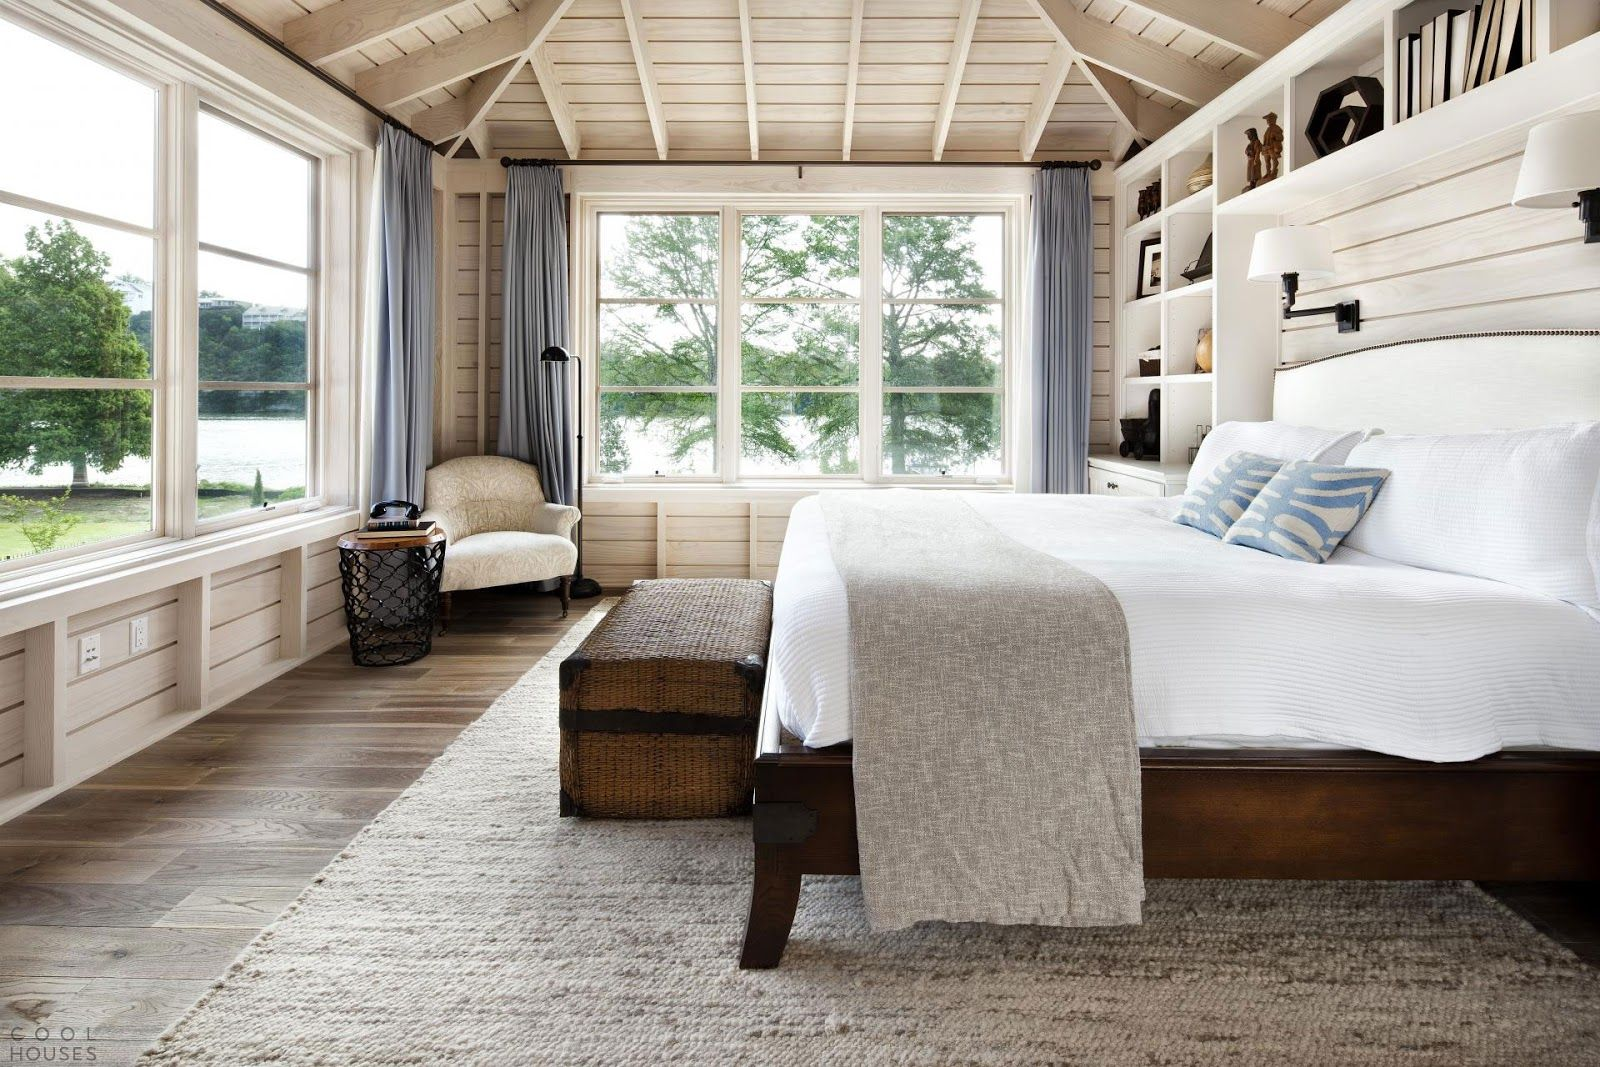 40 Chic Beach House Interior Design Ideas Modern Rustic Bedrooms